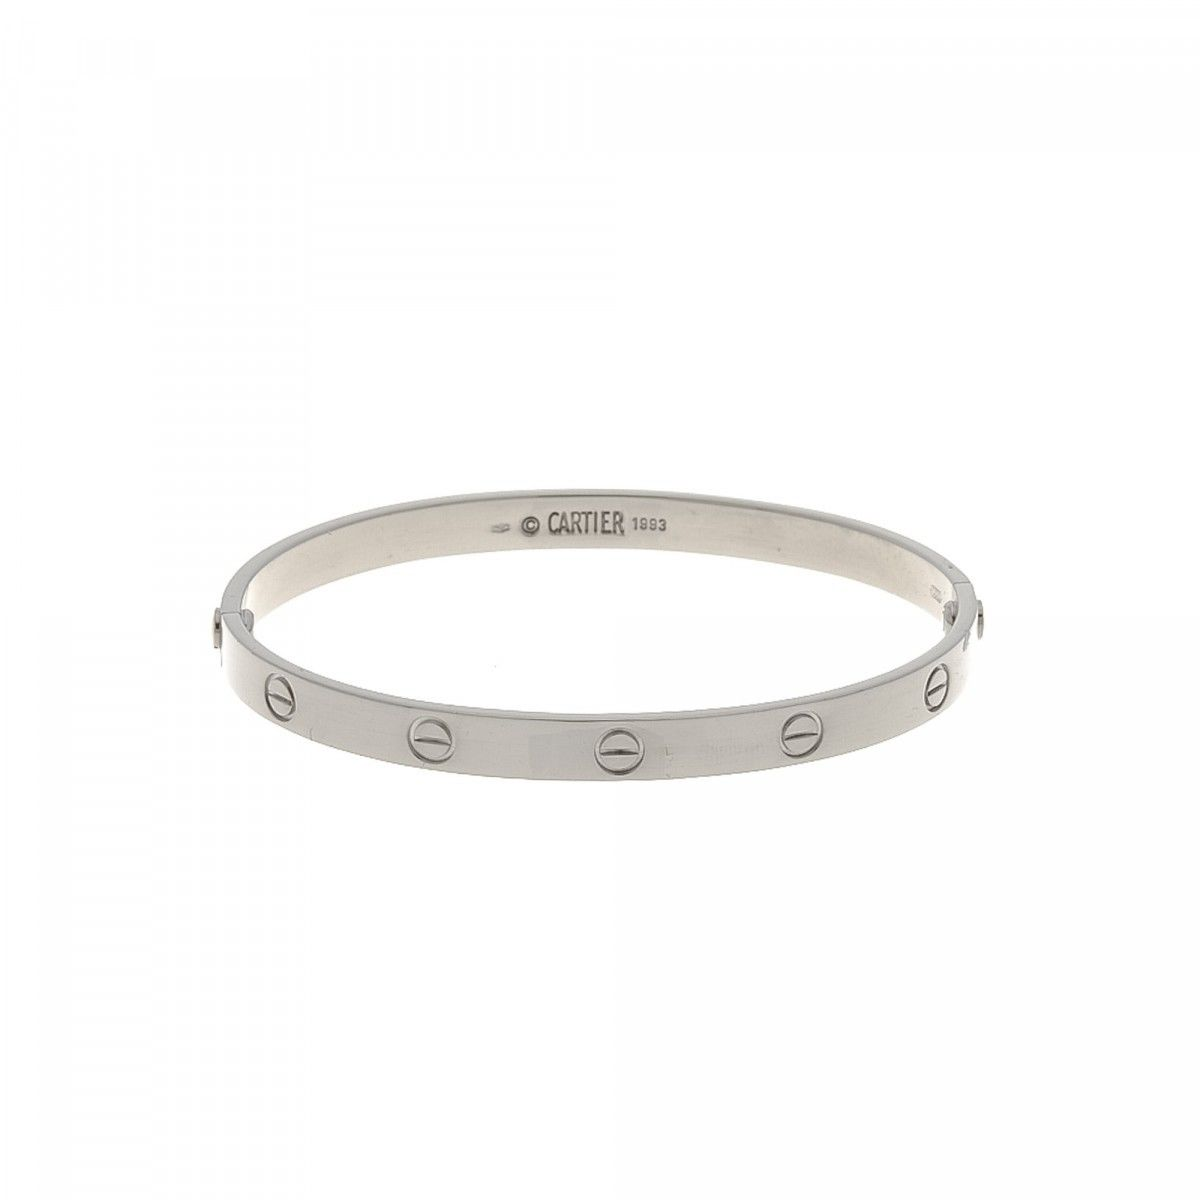 p bangle size things bracelet head steel crystalline oval or inspired love full screw bangles from stainless designer